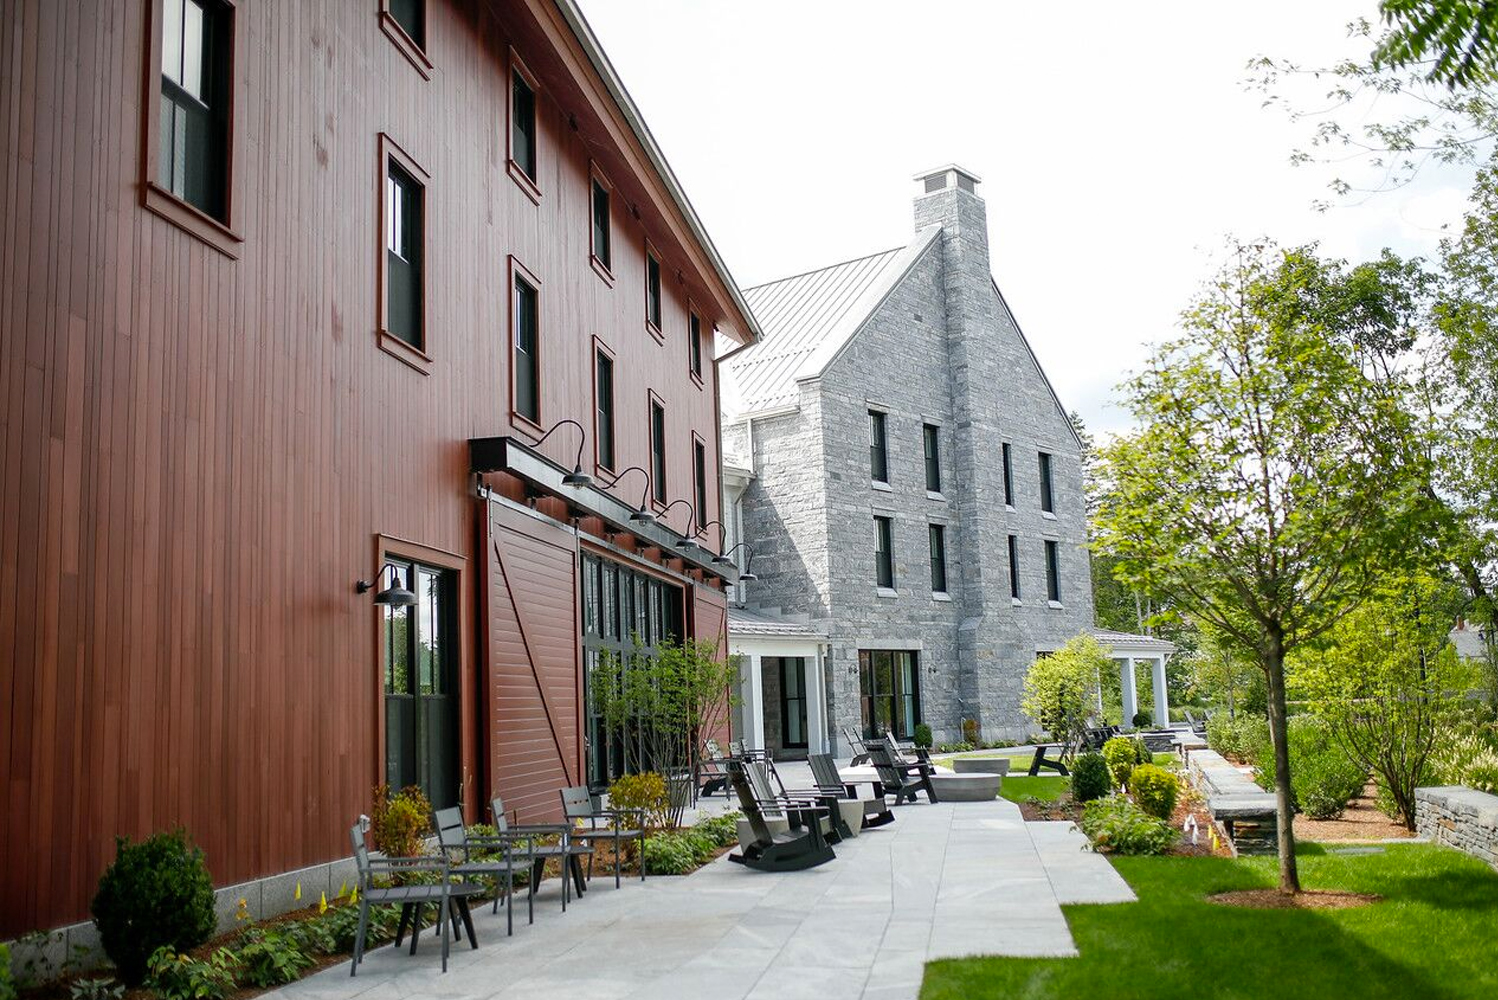 The Williams Inn opened as a new three-story, 58,000-square-foot, 64-room property in Williamstown, Massachusetts, in the Northern Berkshires.